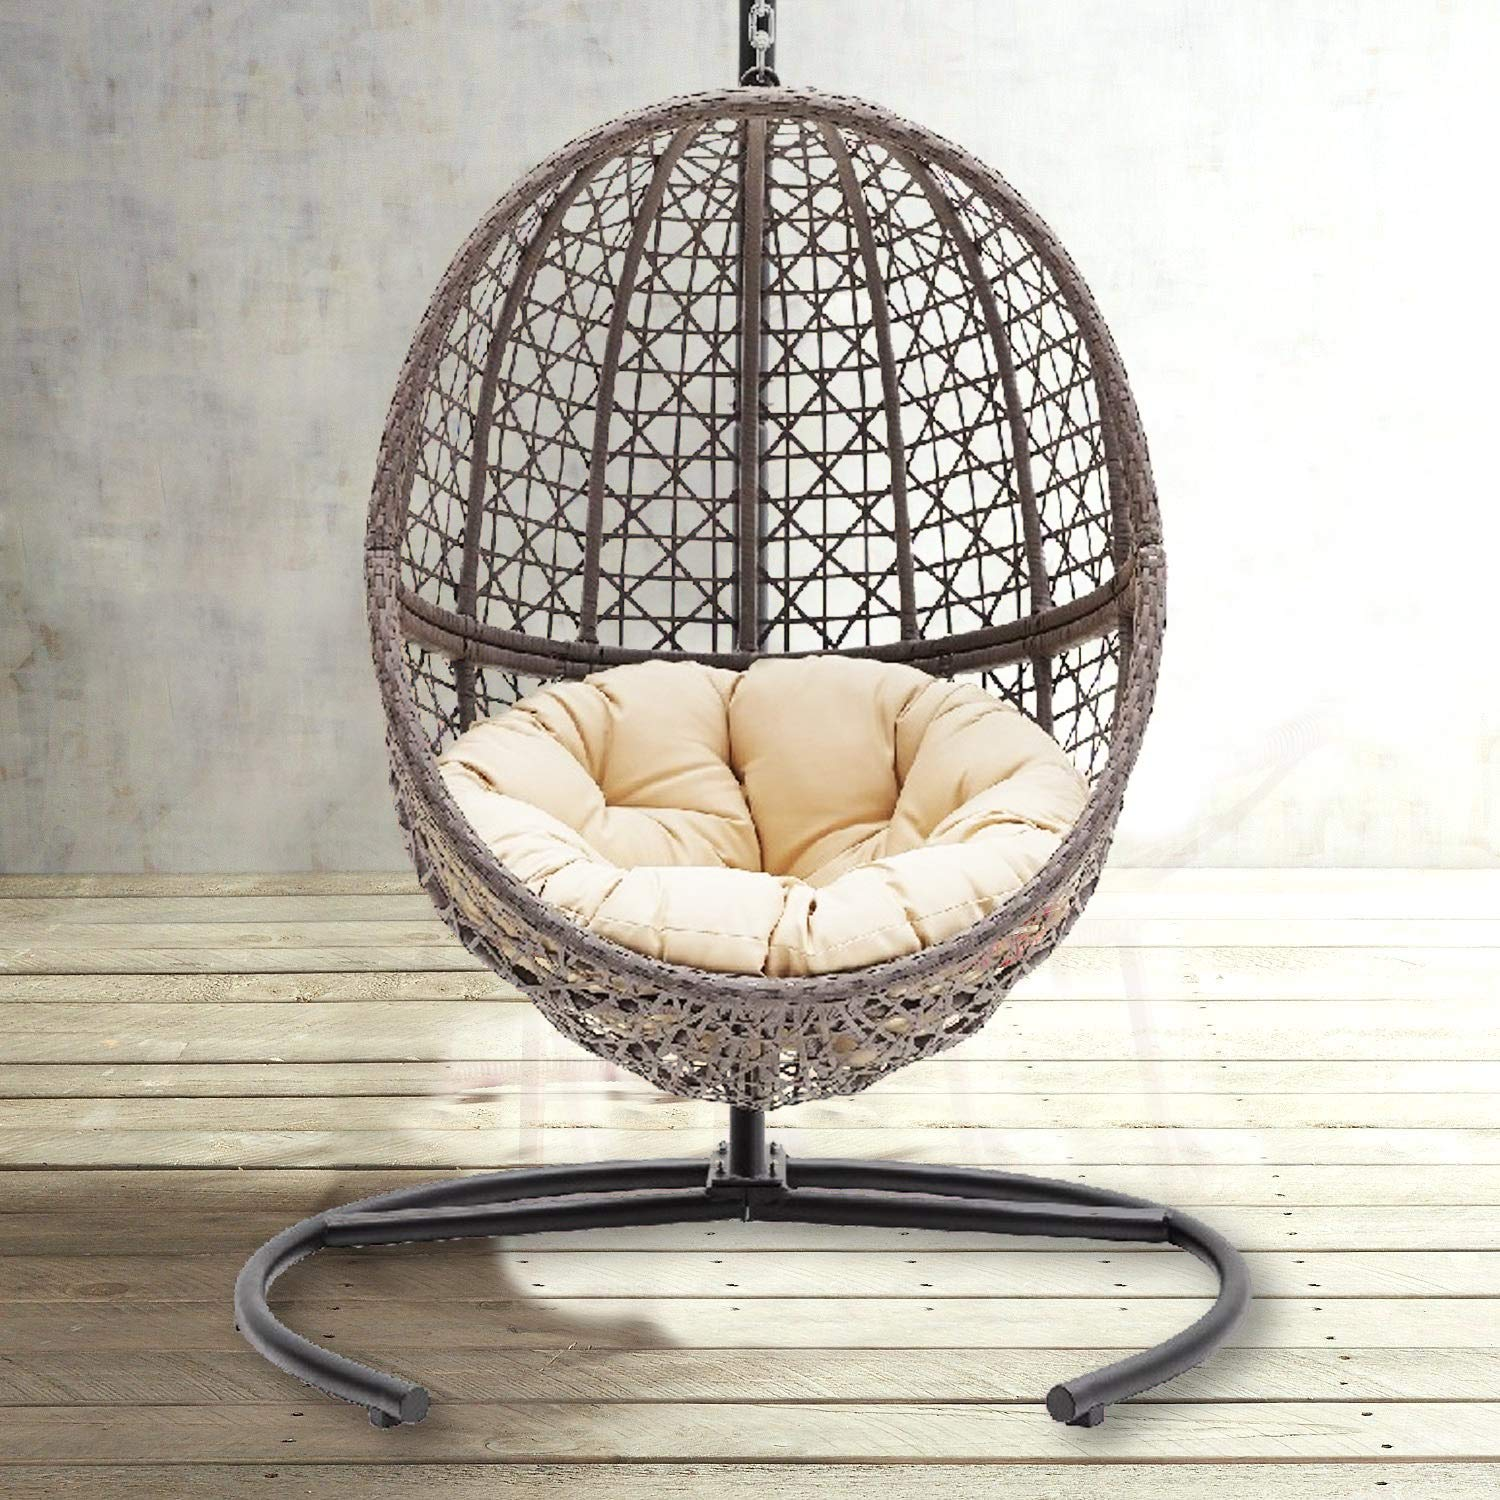 Theraliving Hanging Egg Chair Swing Wicker Bubble Design Seat Includes Tan Tufted Cushion And Stand Amazon In Home Kitchen